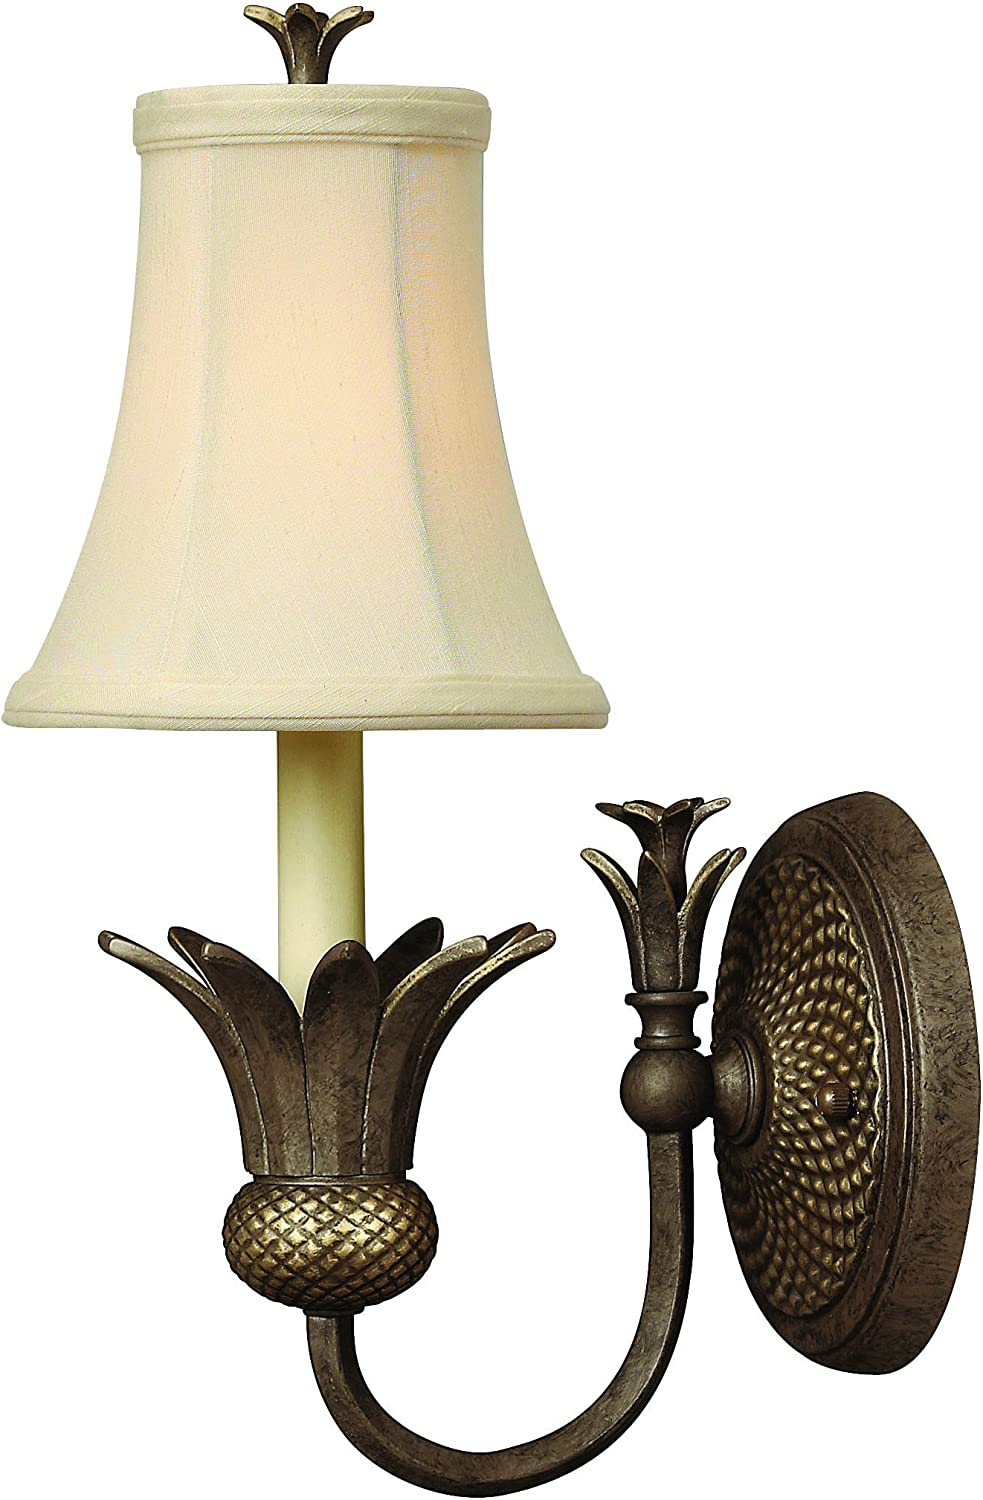 Hinkley 4880PZ Leaf, Flower, Fruit One Light Wall Sconce from Plantation collection in Bronze Darkfinish,